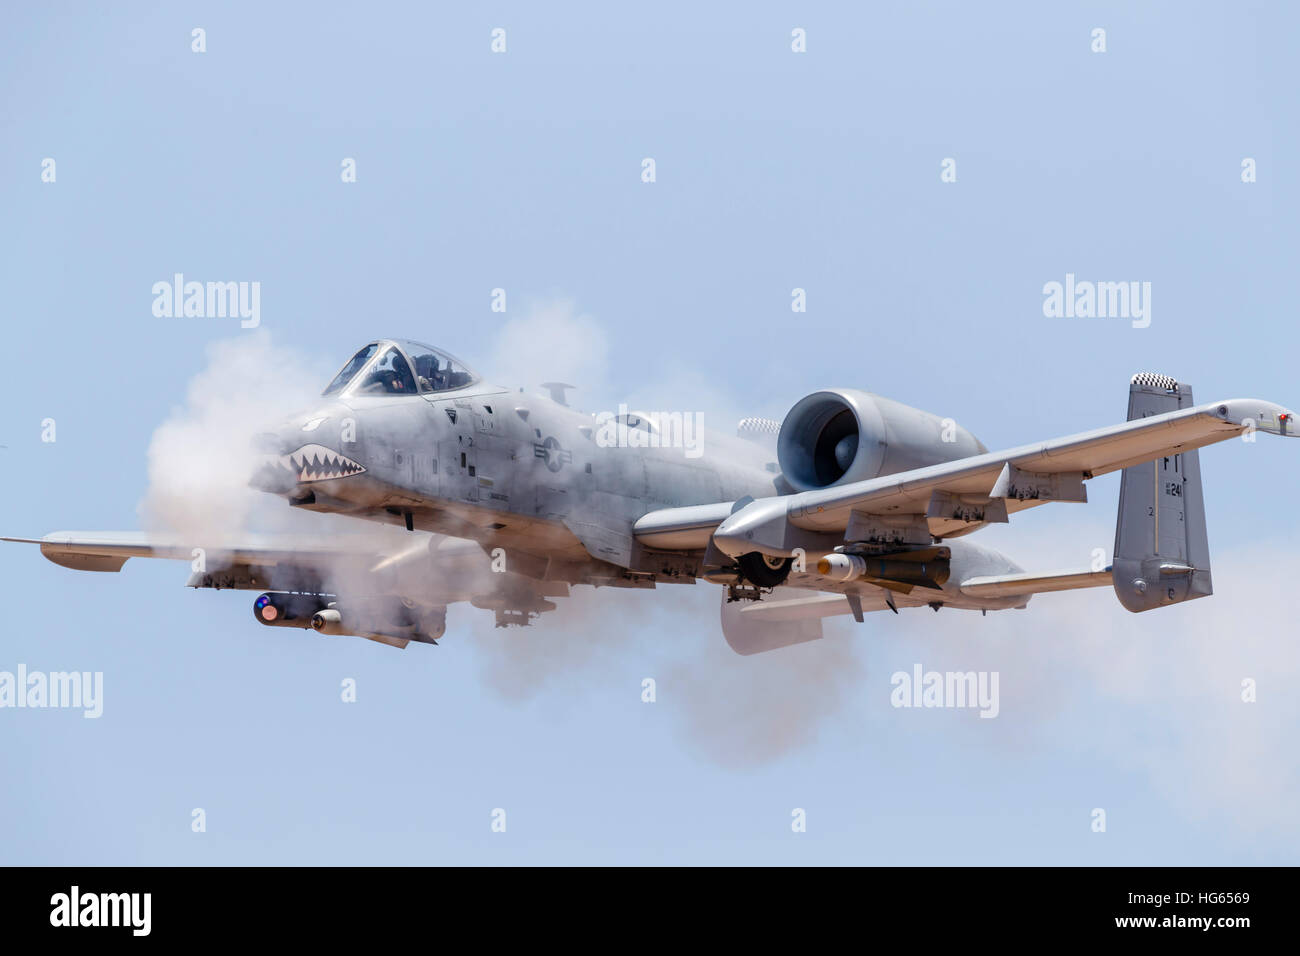 A U.S. Air Force A-10 Thunderbolt II fires its 30mm gun at ...